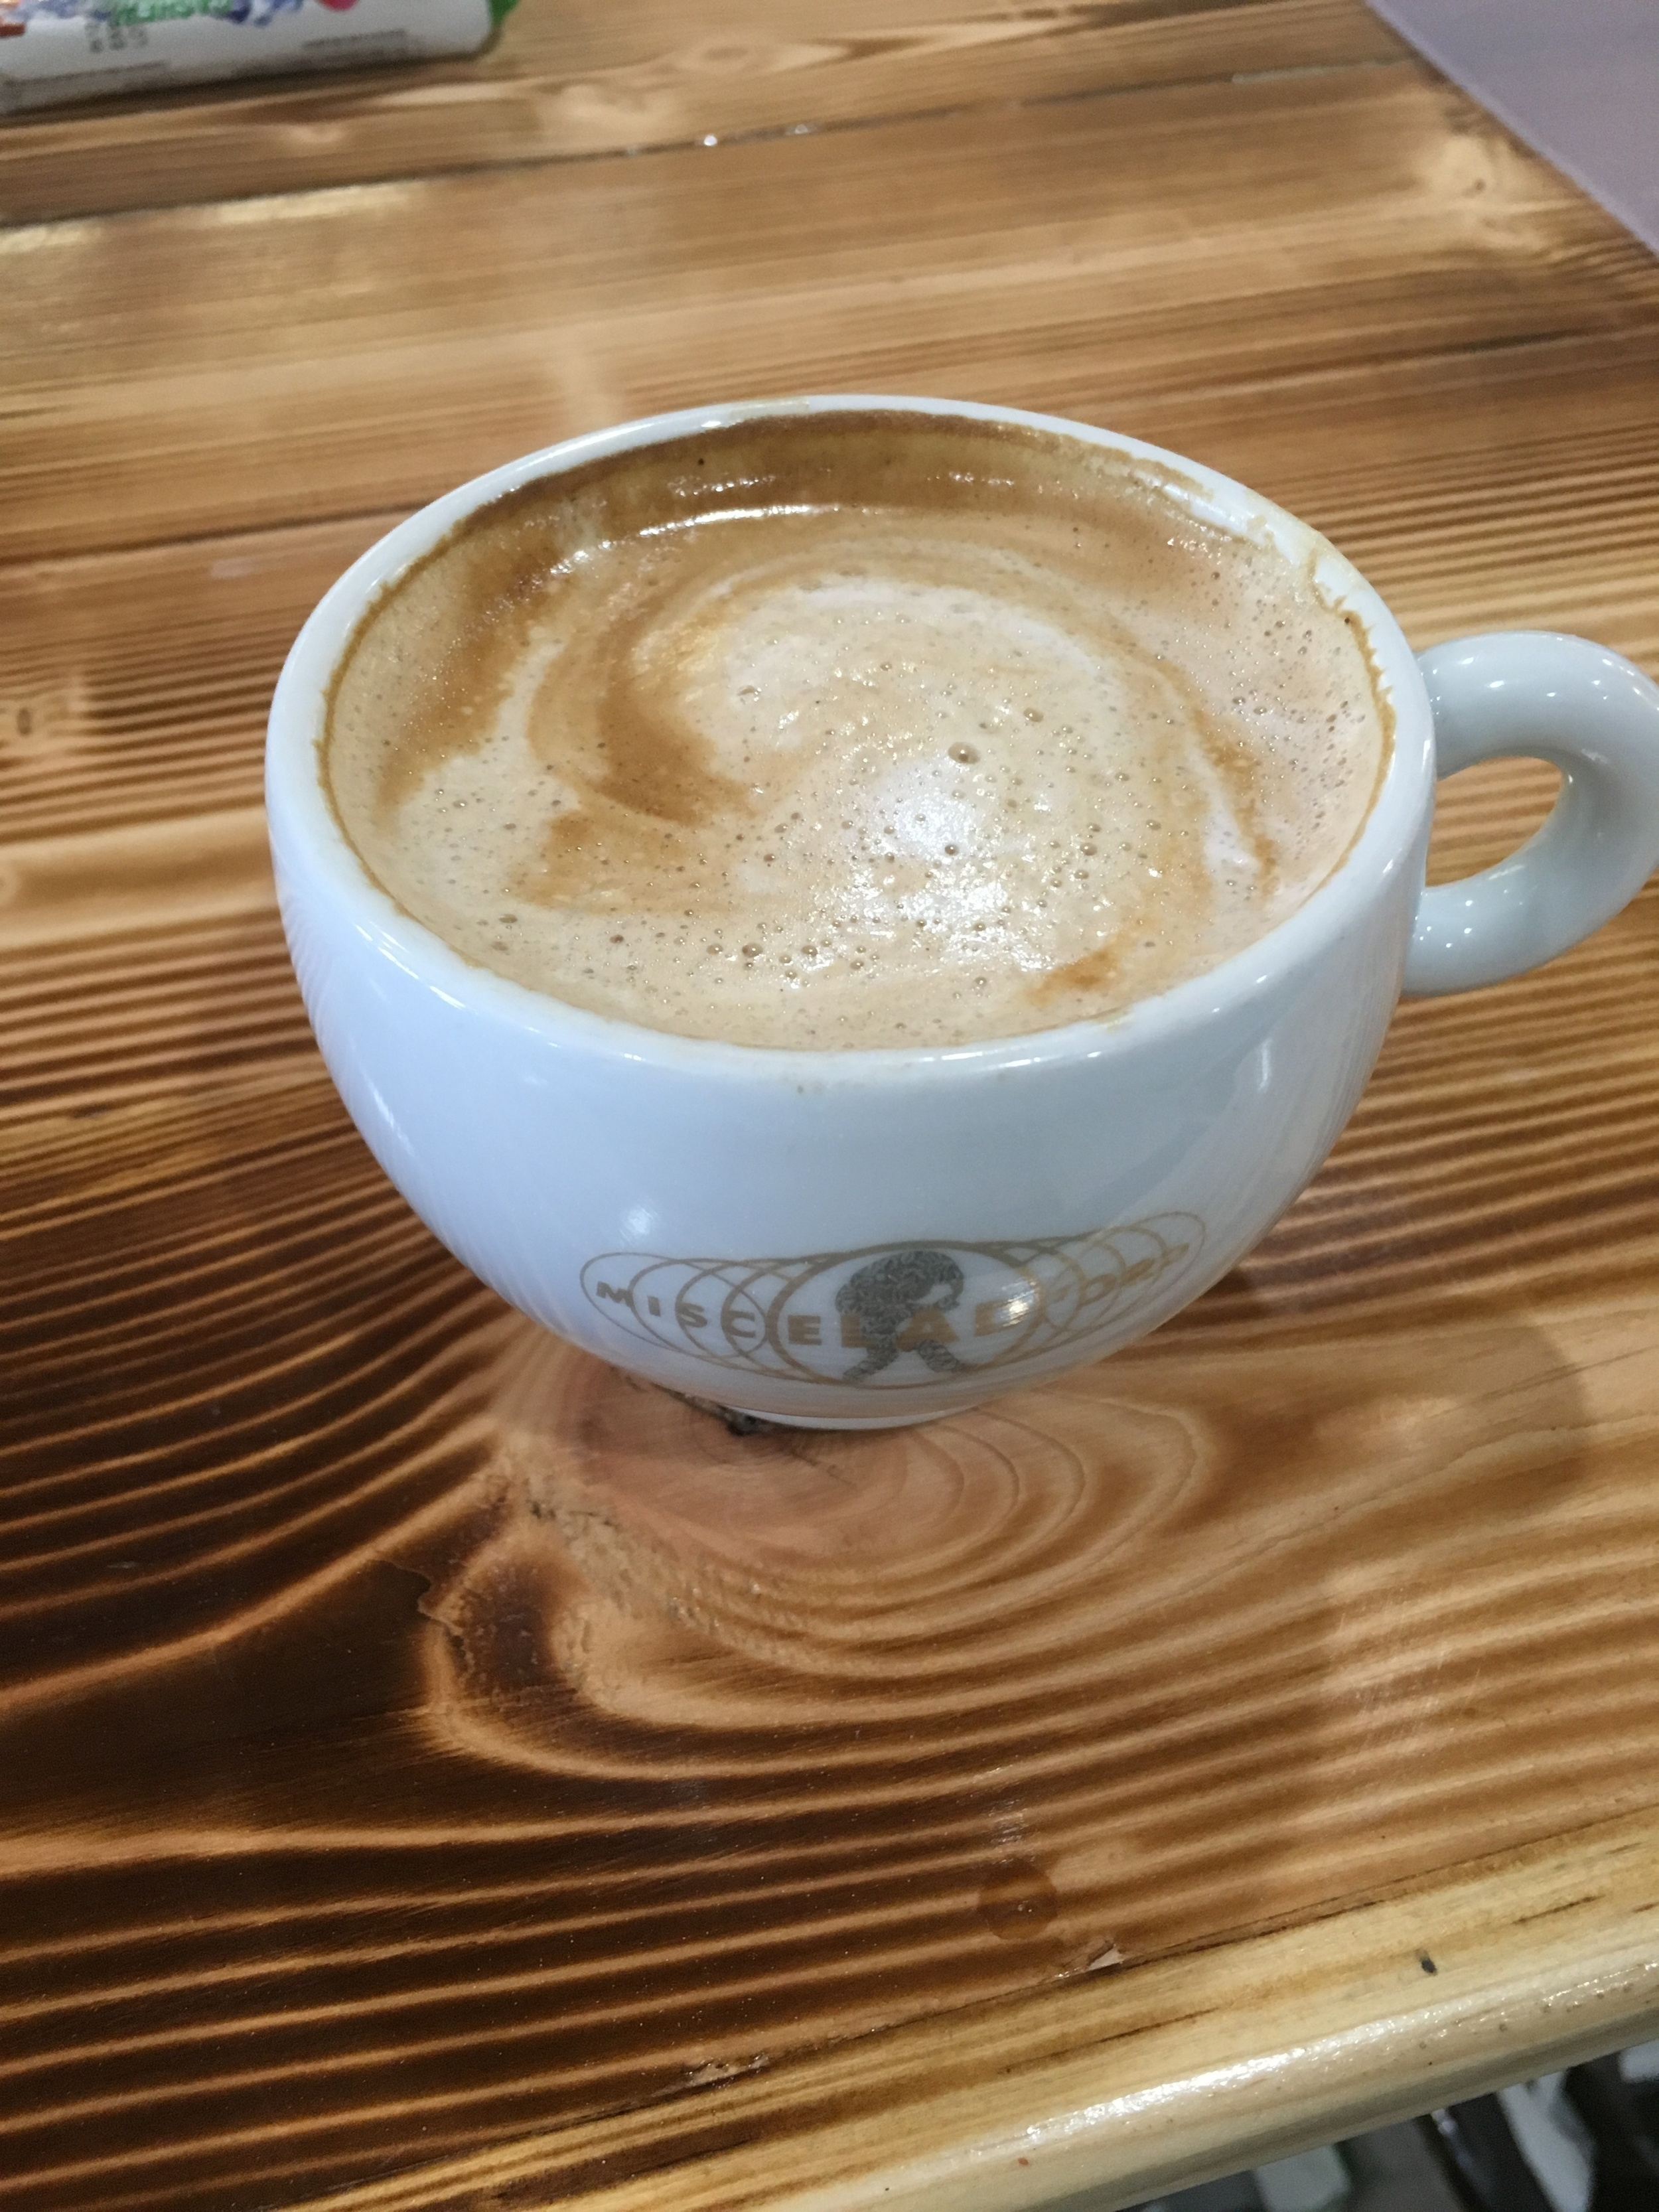 Our signature Italian Cappuccino pulled and foamed in the traditional fashion for a coffee experience unlike anything else!